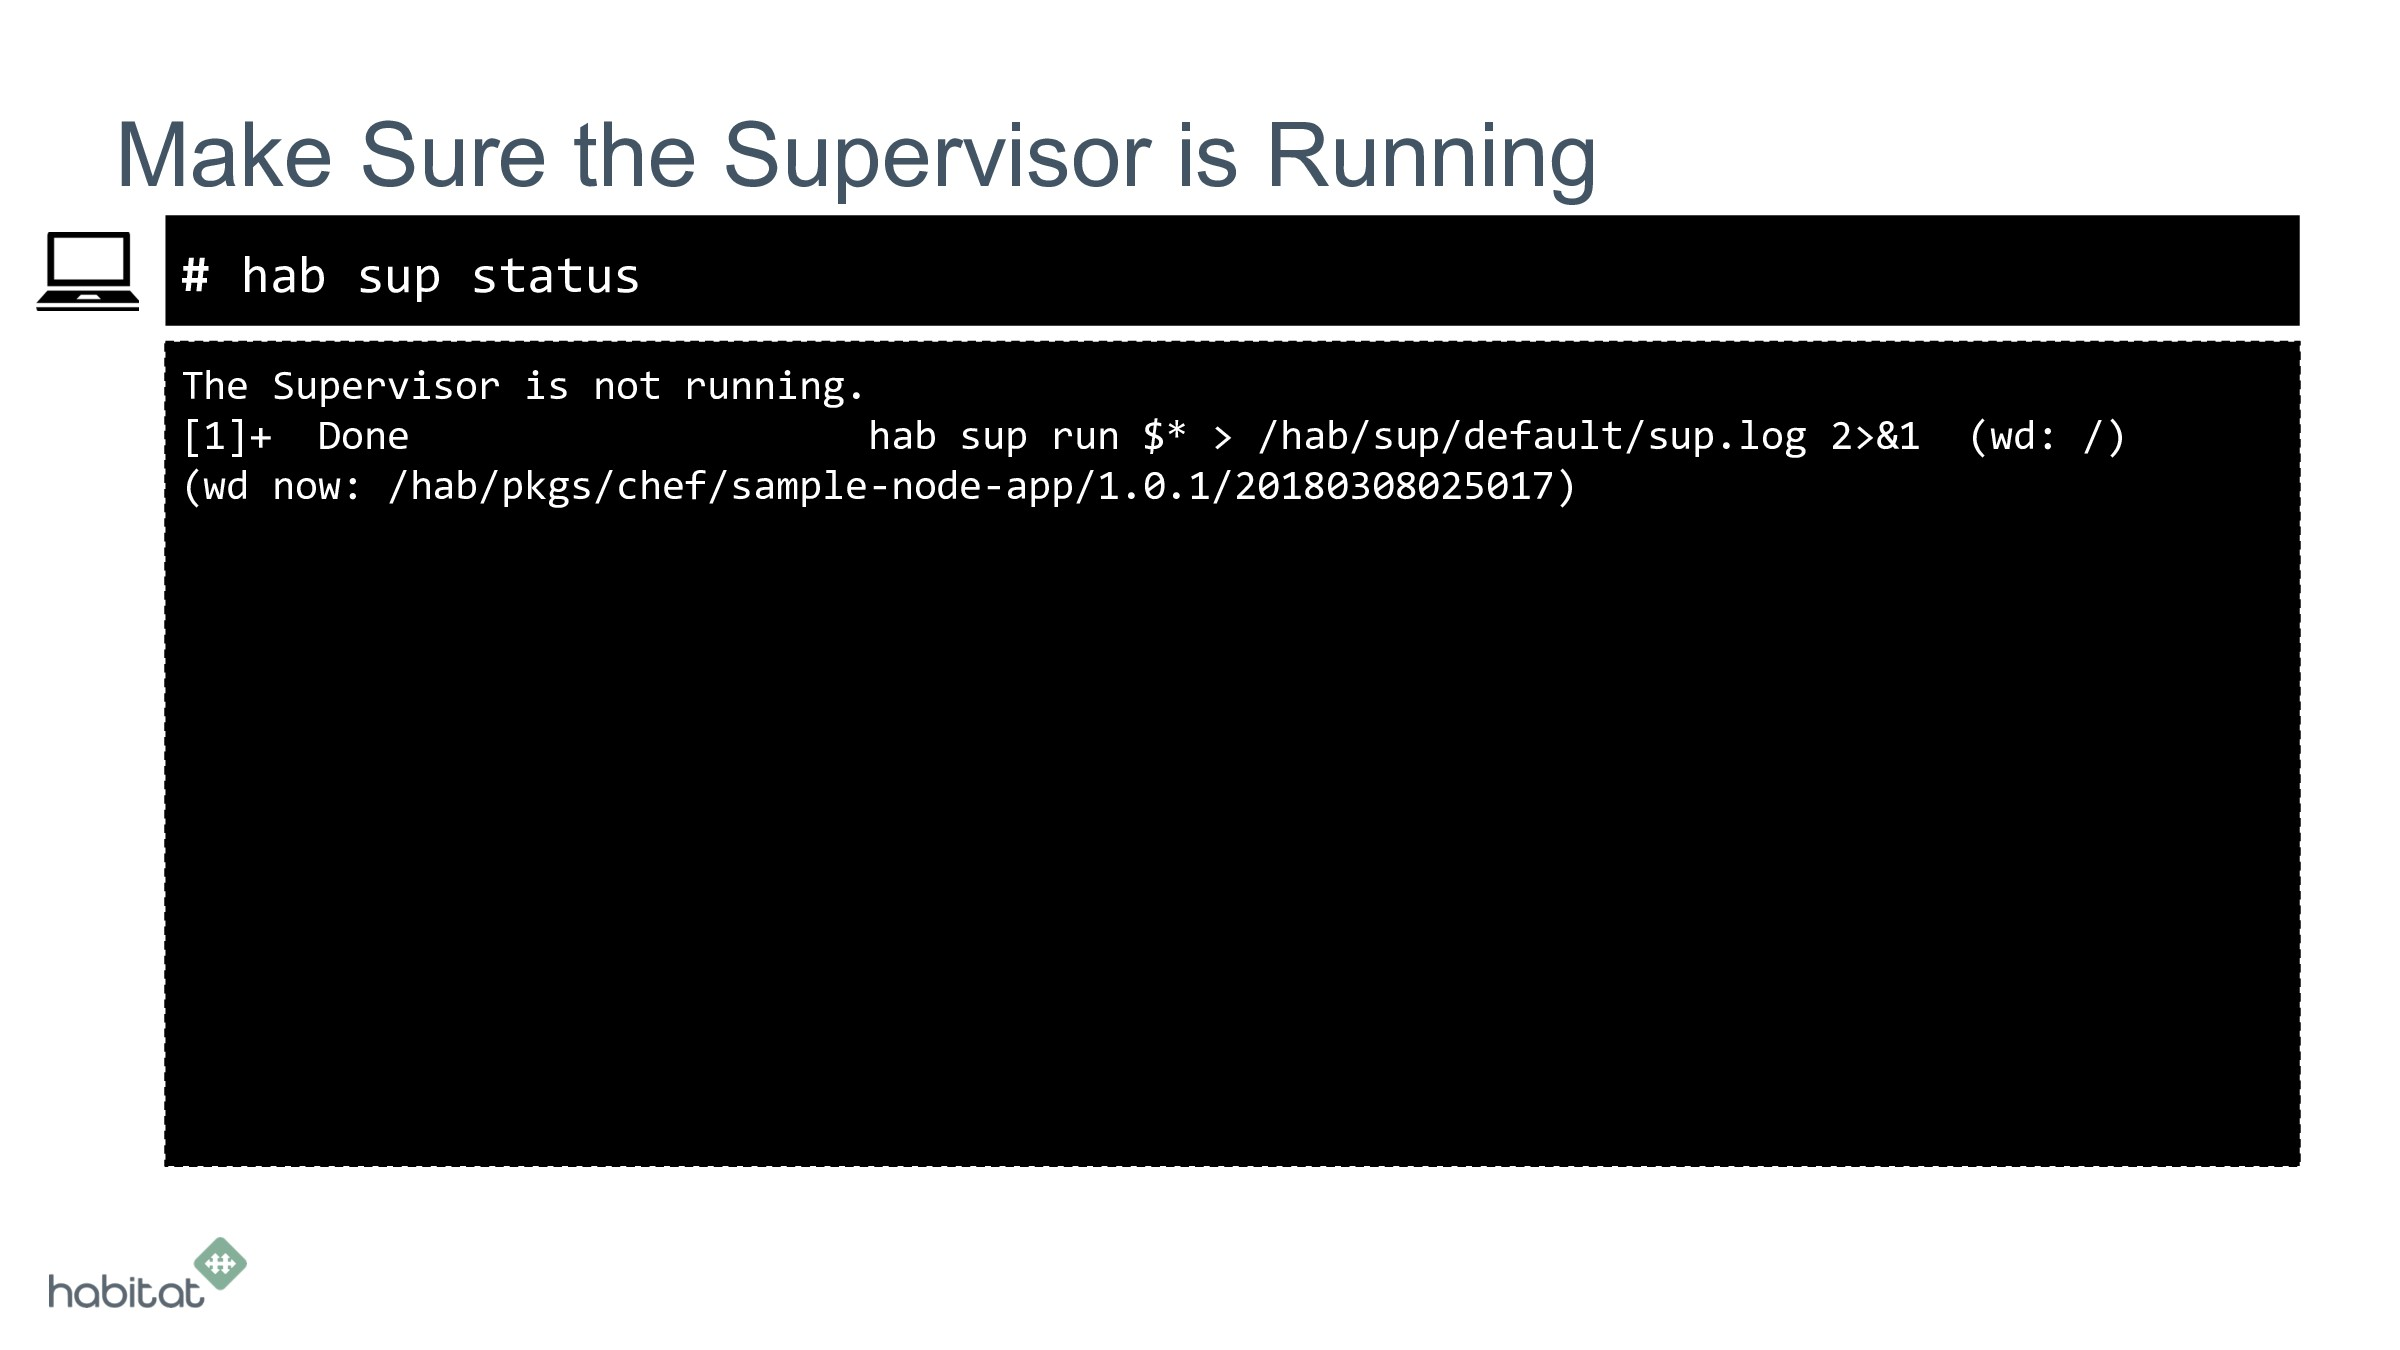 # The Supervisor is not running. [1]+ Done hab ...